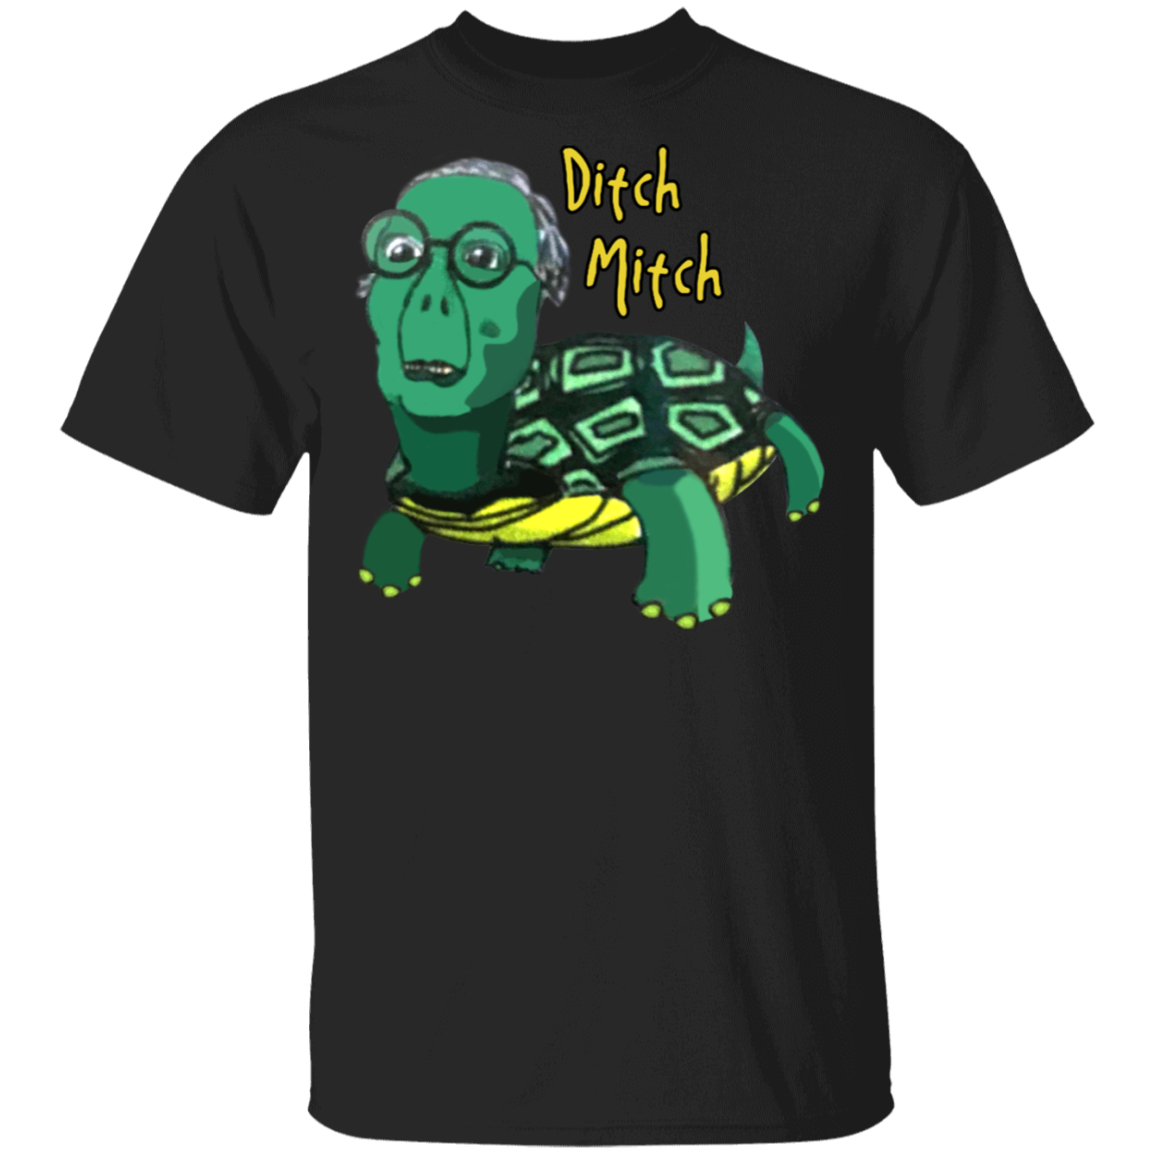 Fuck Mitch McConnell Shirt Ditch Mitch Funny Anti Turtle Face Against McConnell T-Shirt